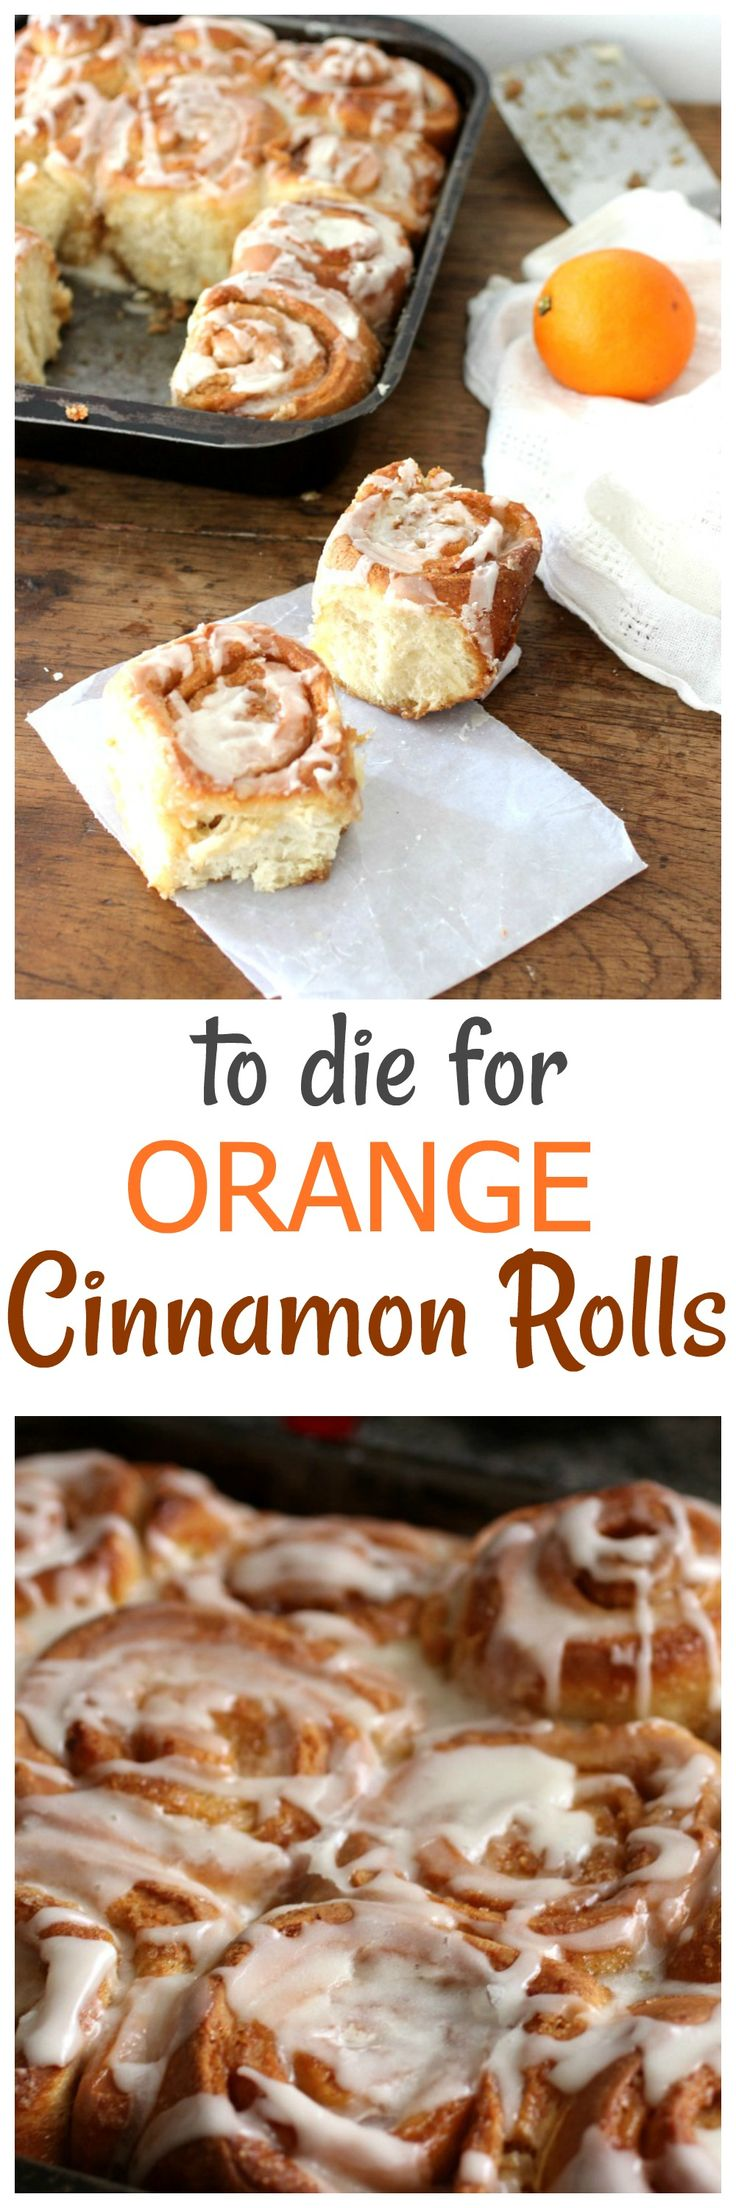 ORANGE CINNAMON ROLLS, means the traditional roll got upgraded with a little orange zest and glaze. They freeze wonderfully. My go-to roll recipe.